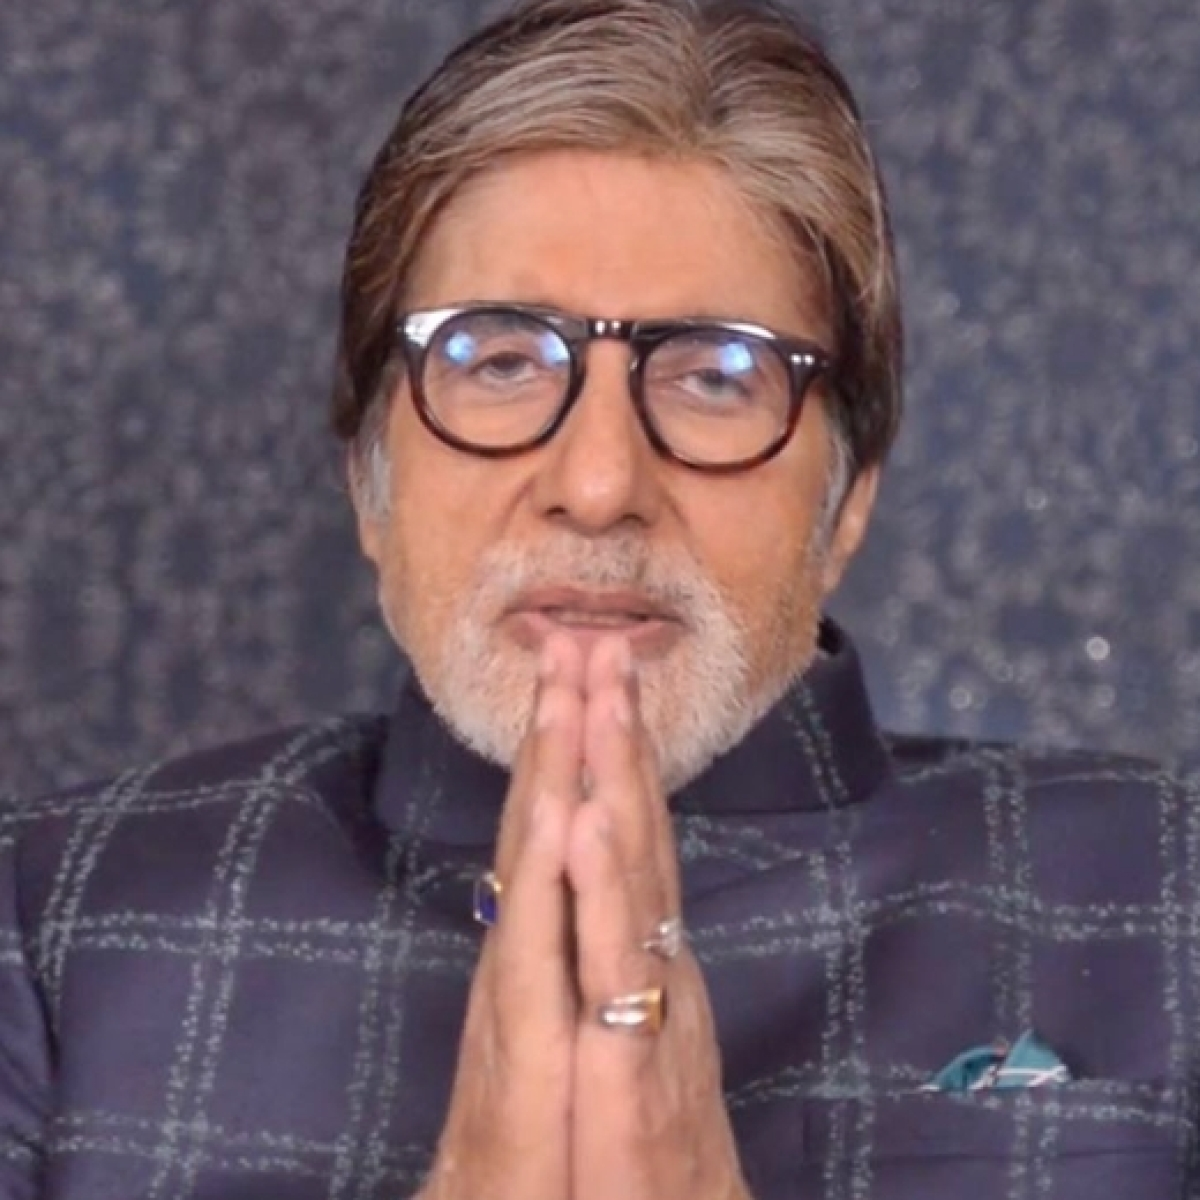 Amitabh Bachchan apologises for making an error while numbering his tweets